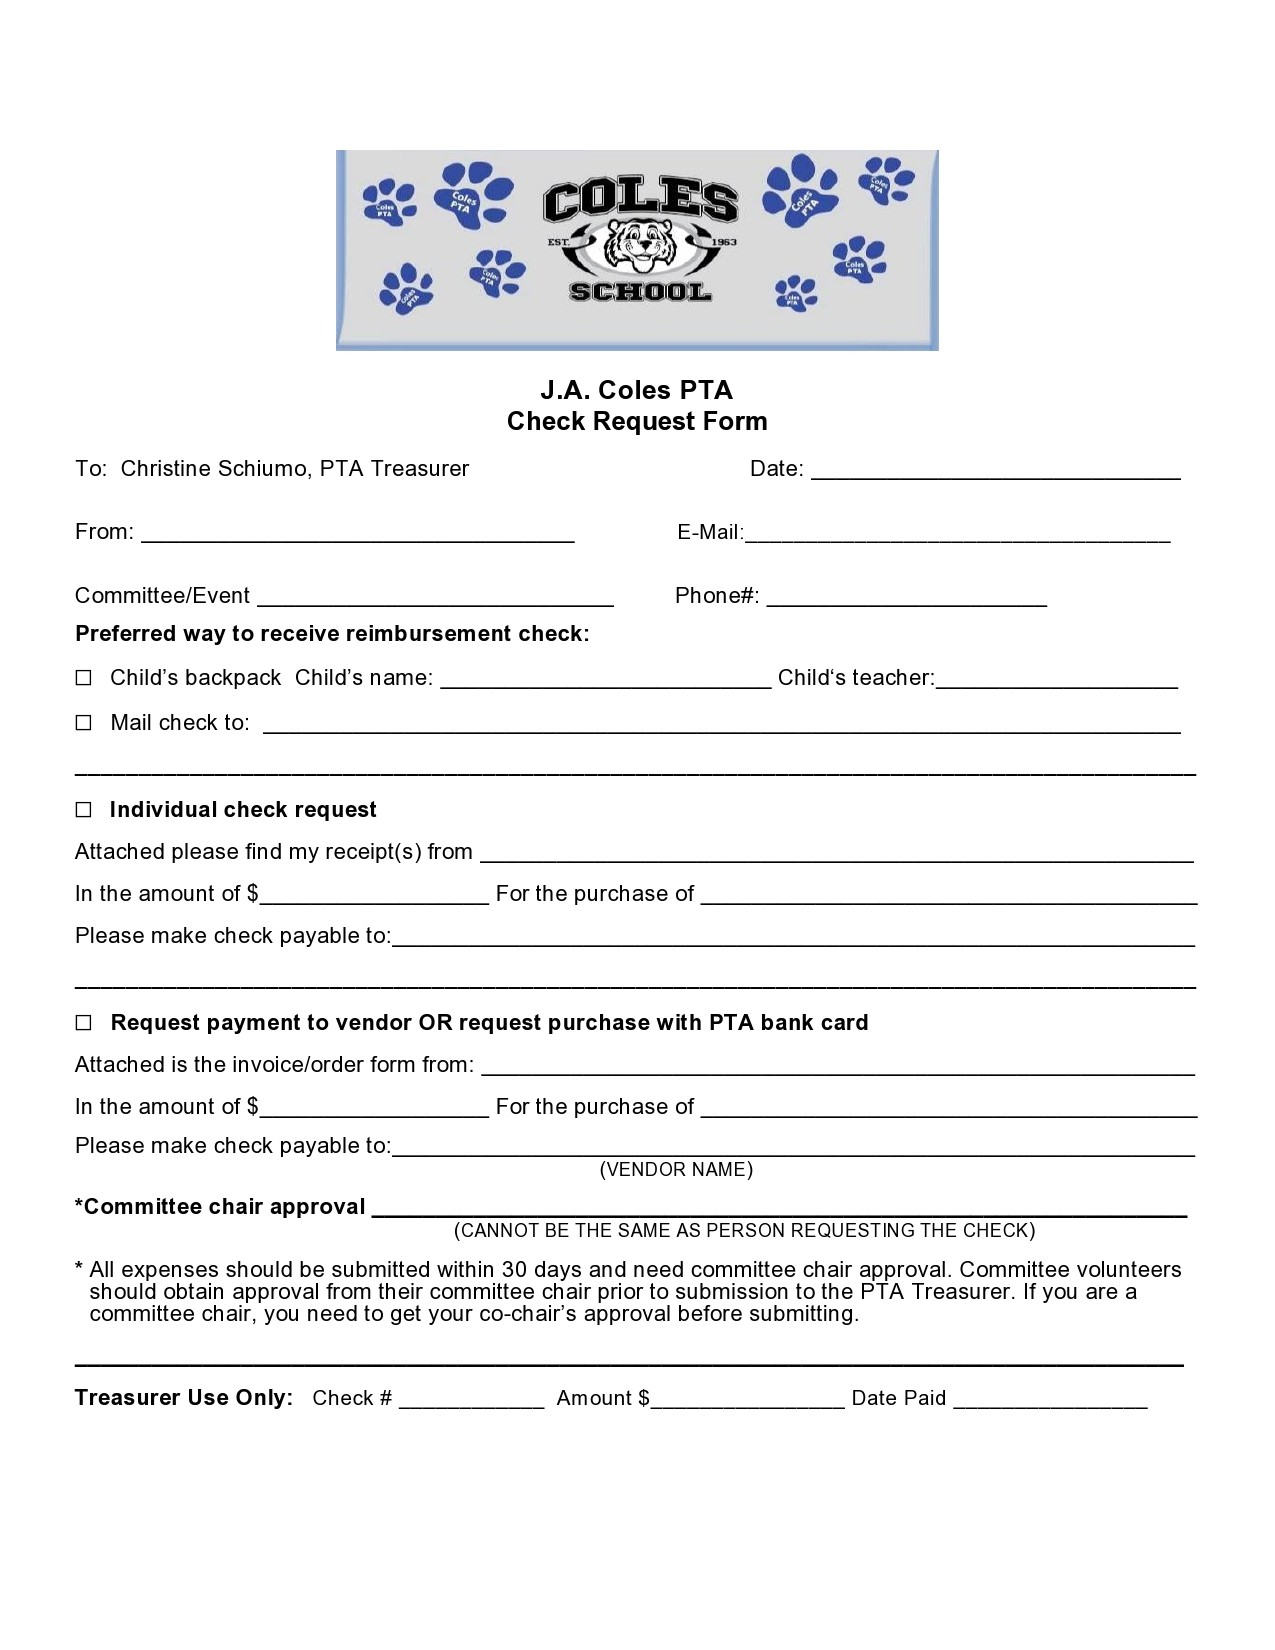 Free check request form 18